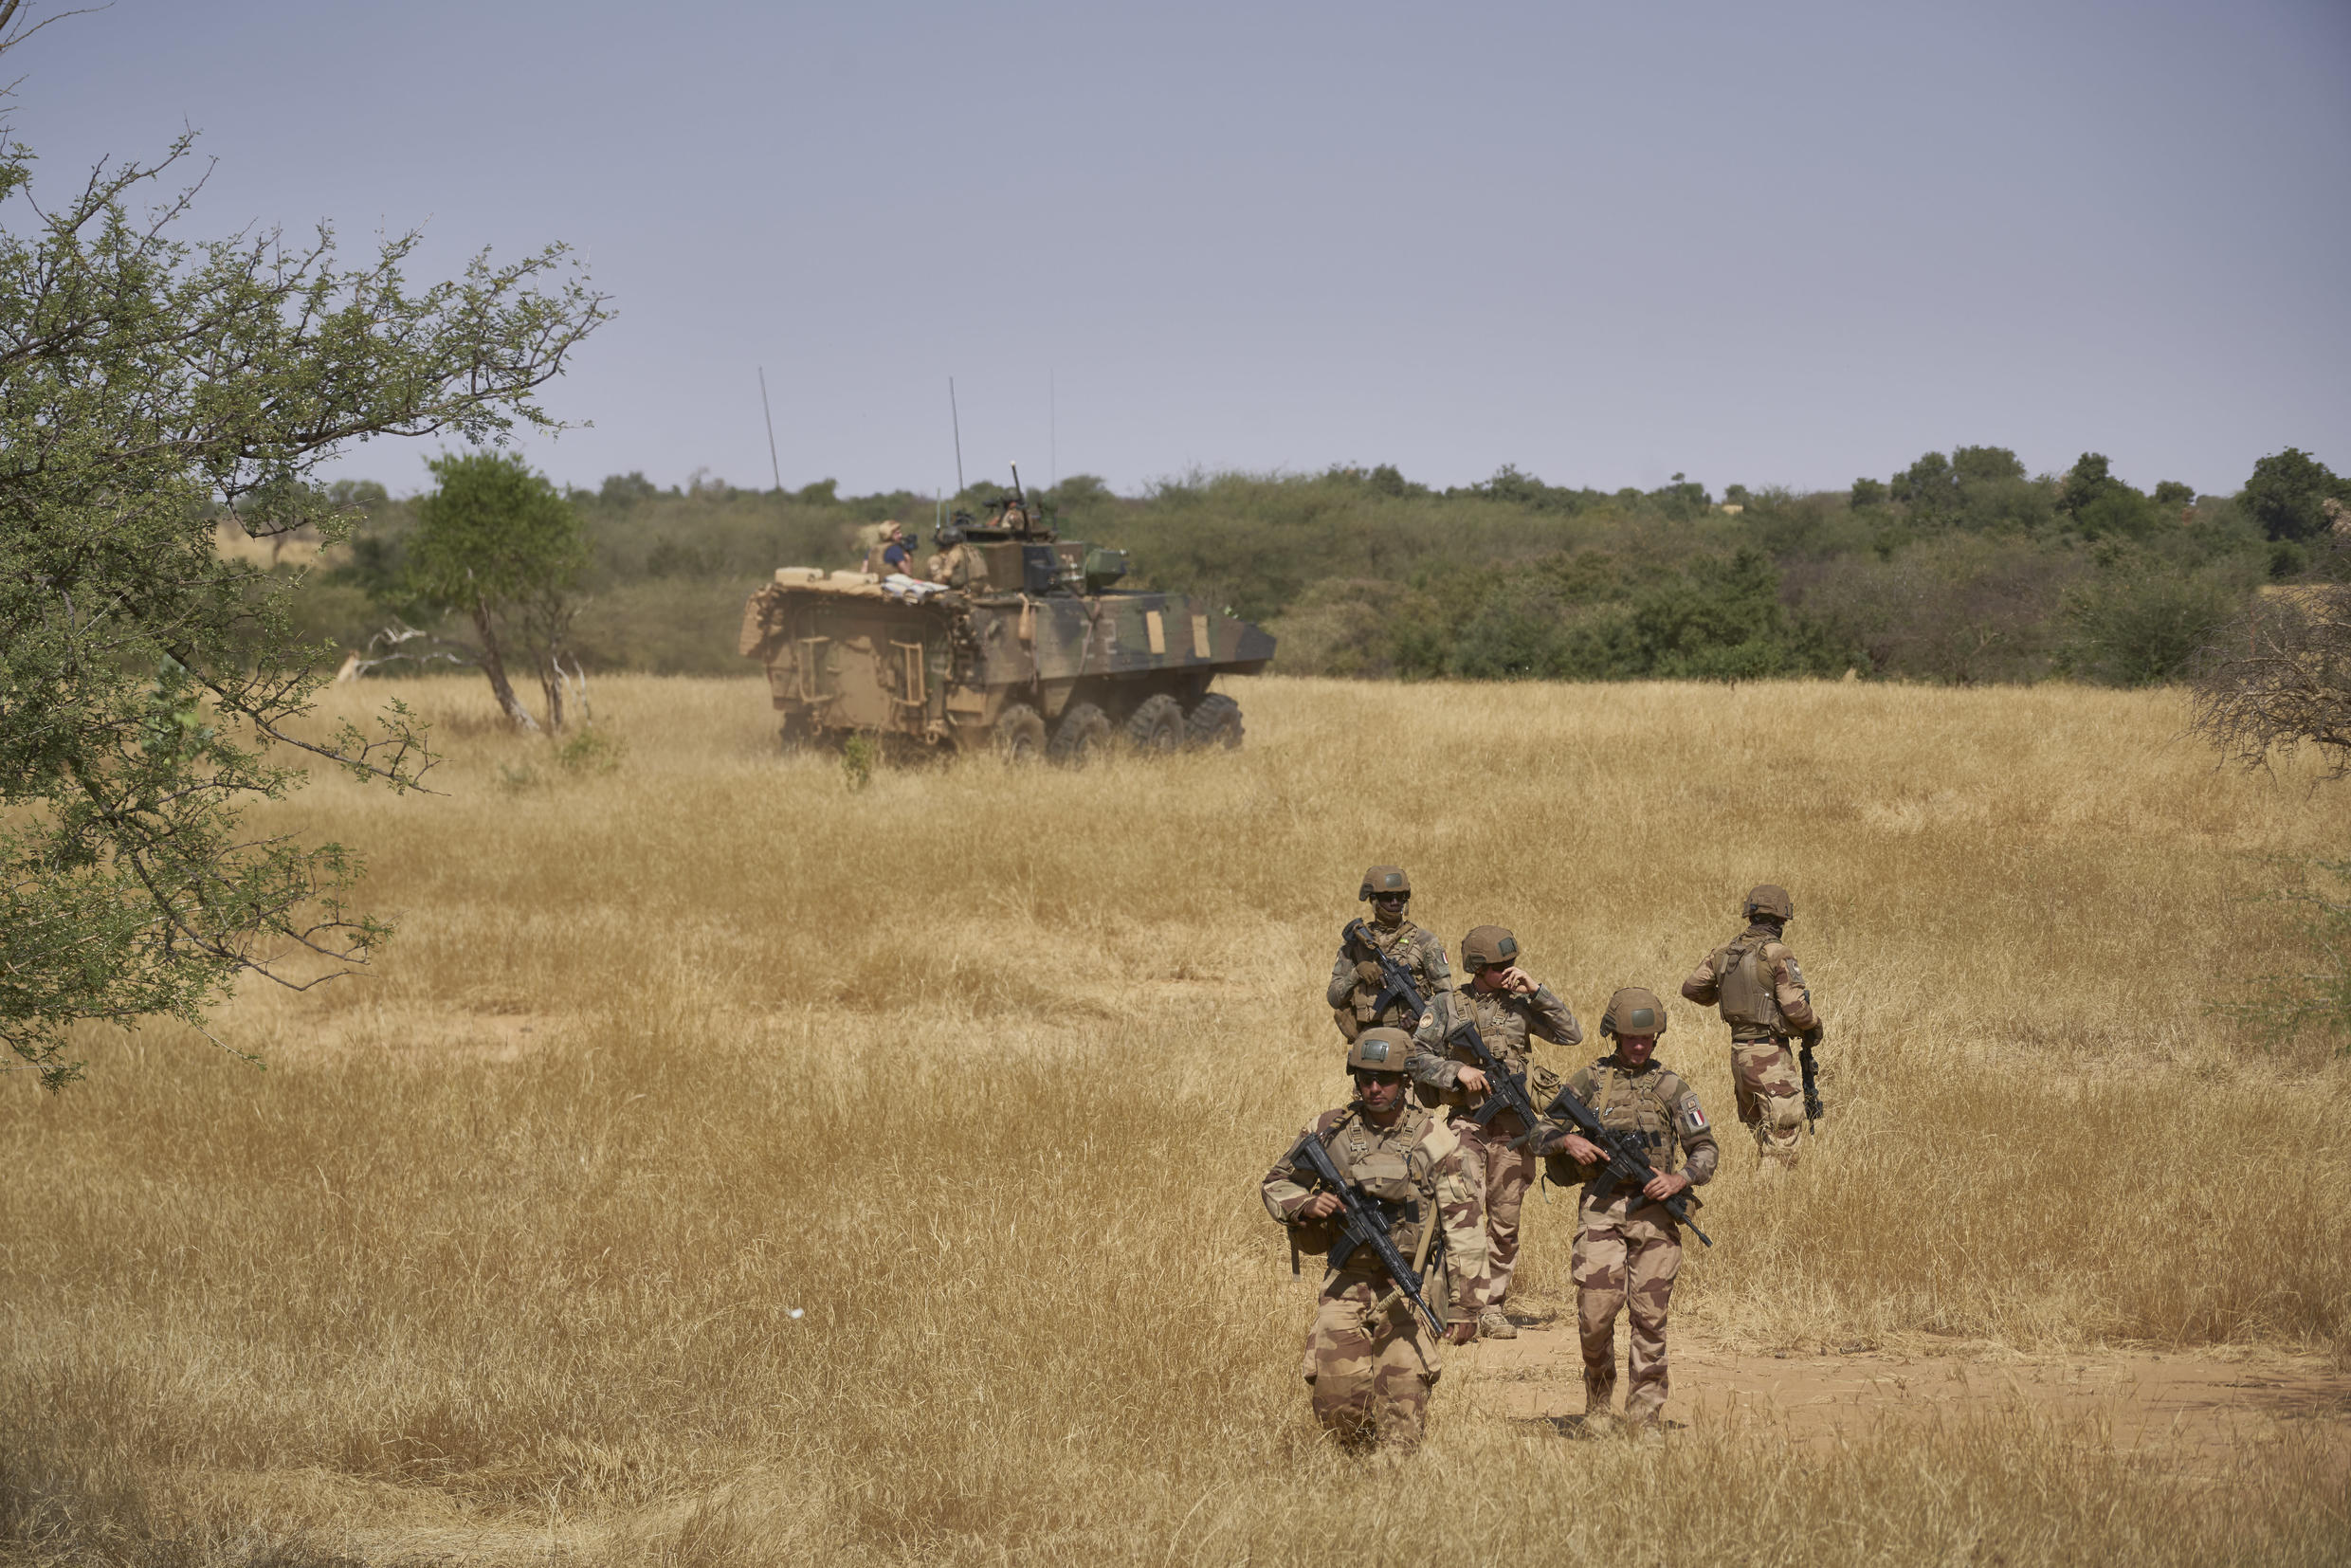 French troops have been deployed to Mali as well as neighbouring countries like Burkina Faso since August 2014 as part of the Barkhane mission